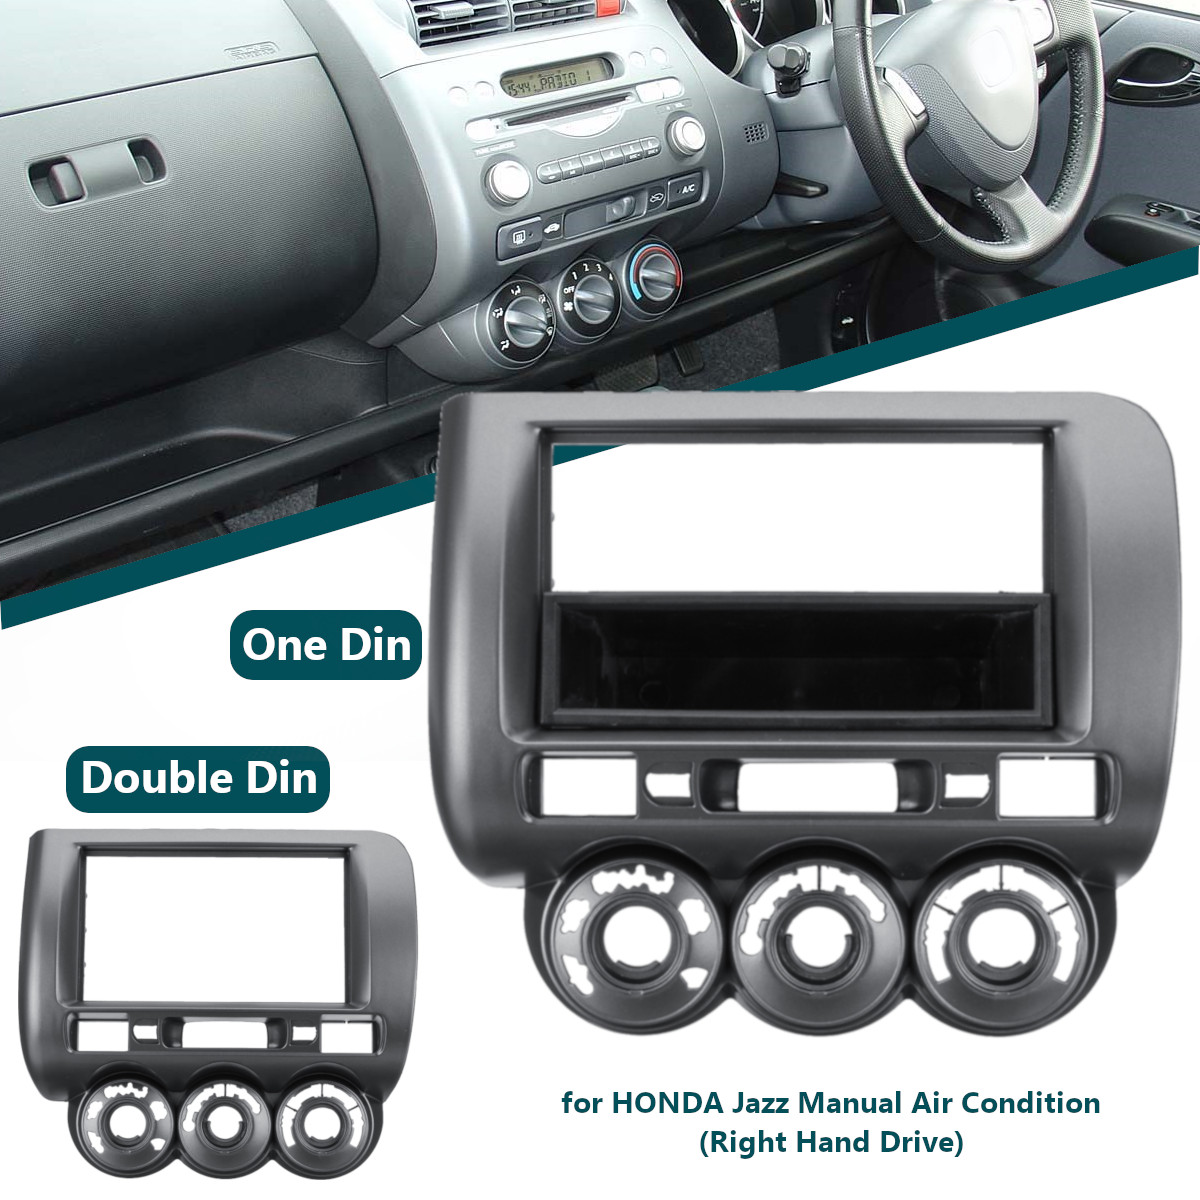 1 or 2 Din Car Stereo Radio Fascia Panel Plate Frame CD Stereo Panel Mount Installation Trim Kit for Honda Jazz Right Hand Drive striped trim fluffy panel bomber jacket